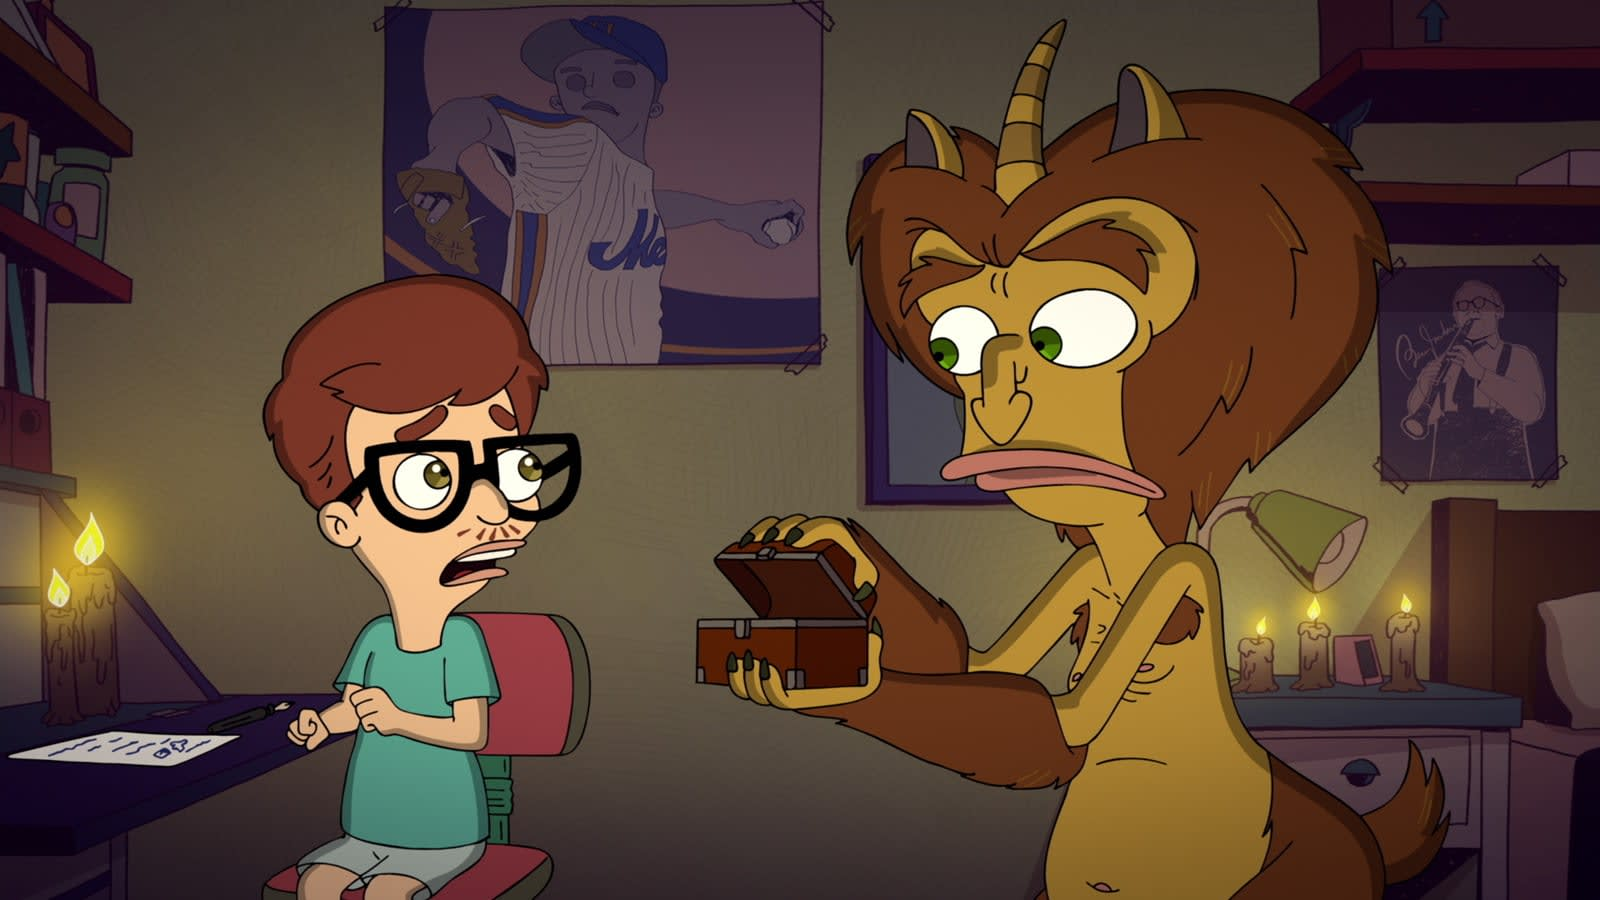 Netflix widens deal with 'Big Mouth' animation studio